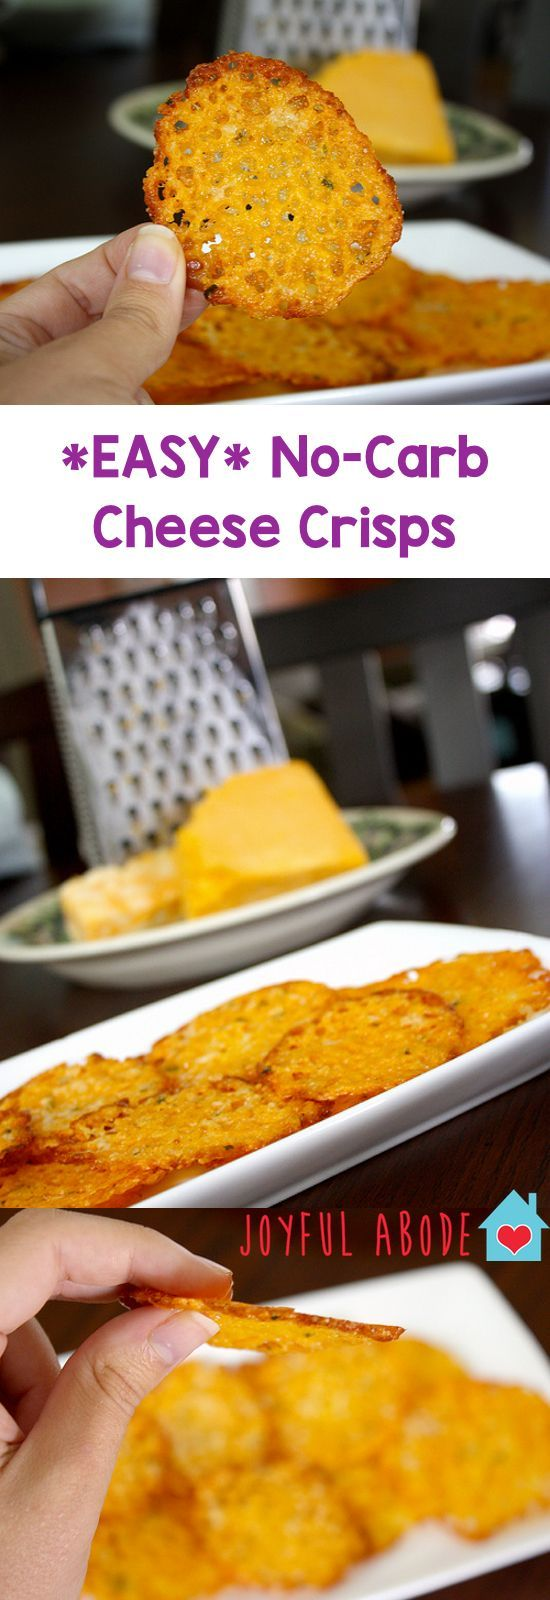 If you're thinking about buying cheese crisps to snack on, don't. It's so easy to make your own! No mess, and it only takes a few minutes. These are GREAT!